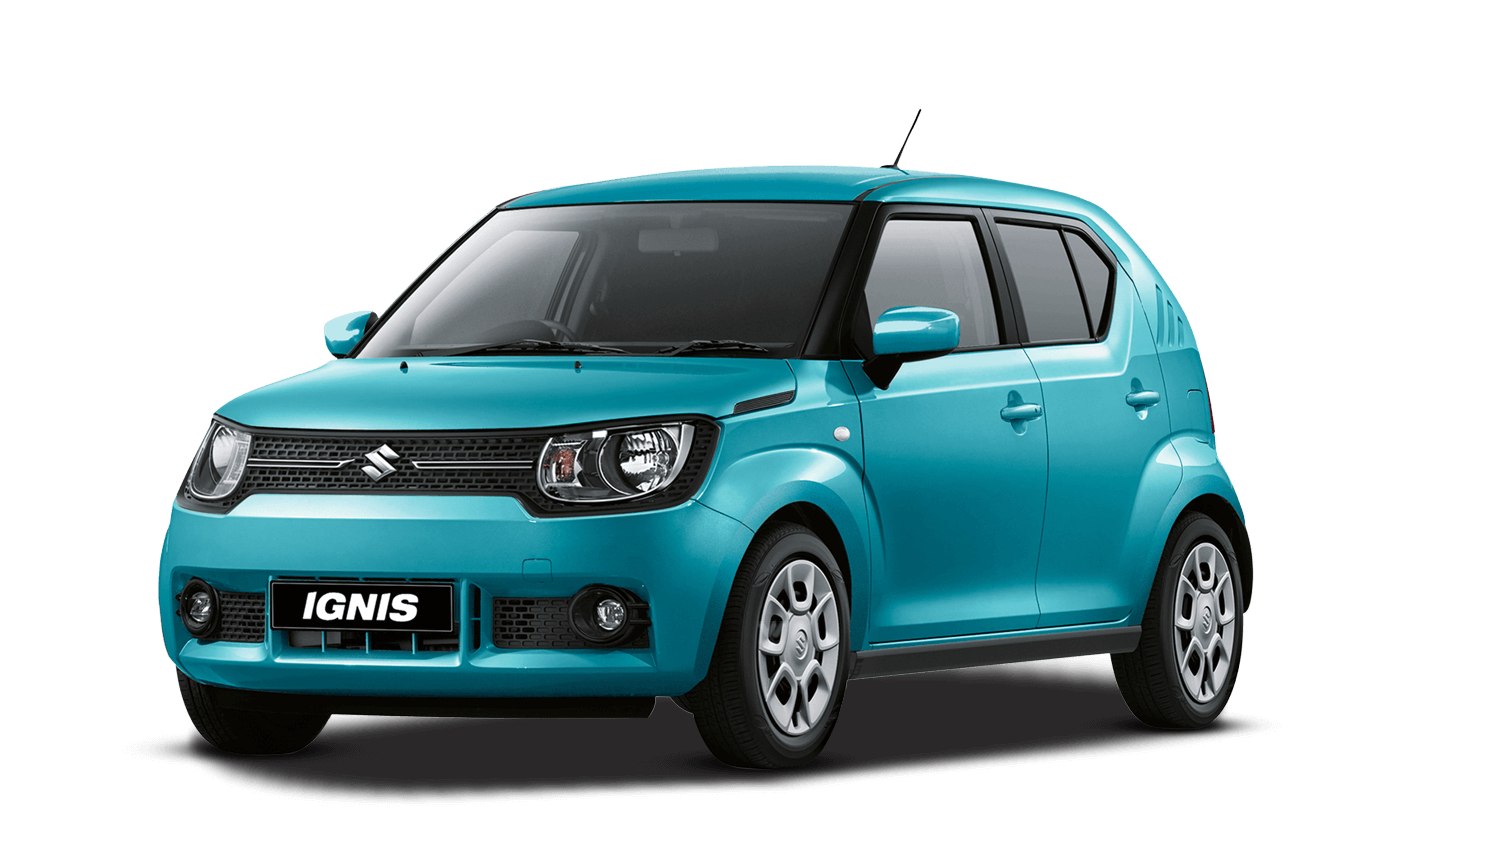 Ignis New Car Offers